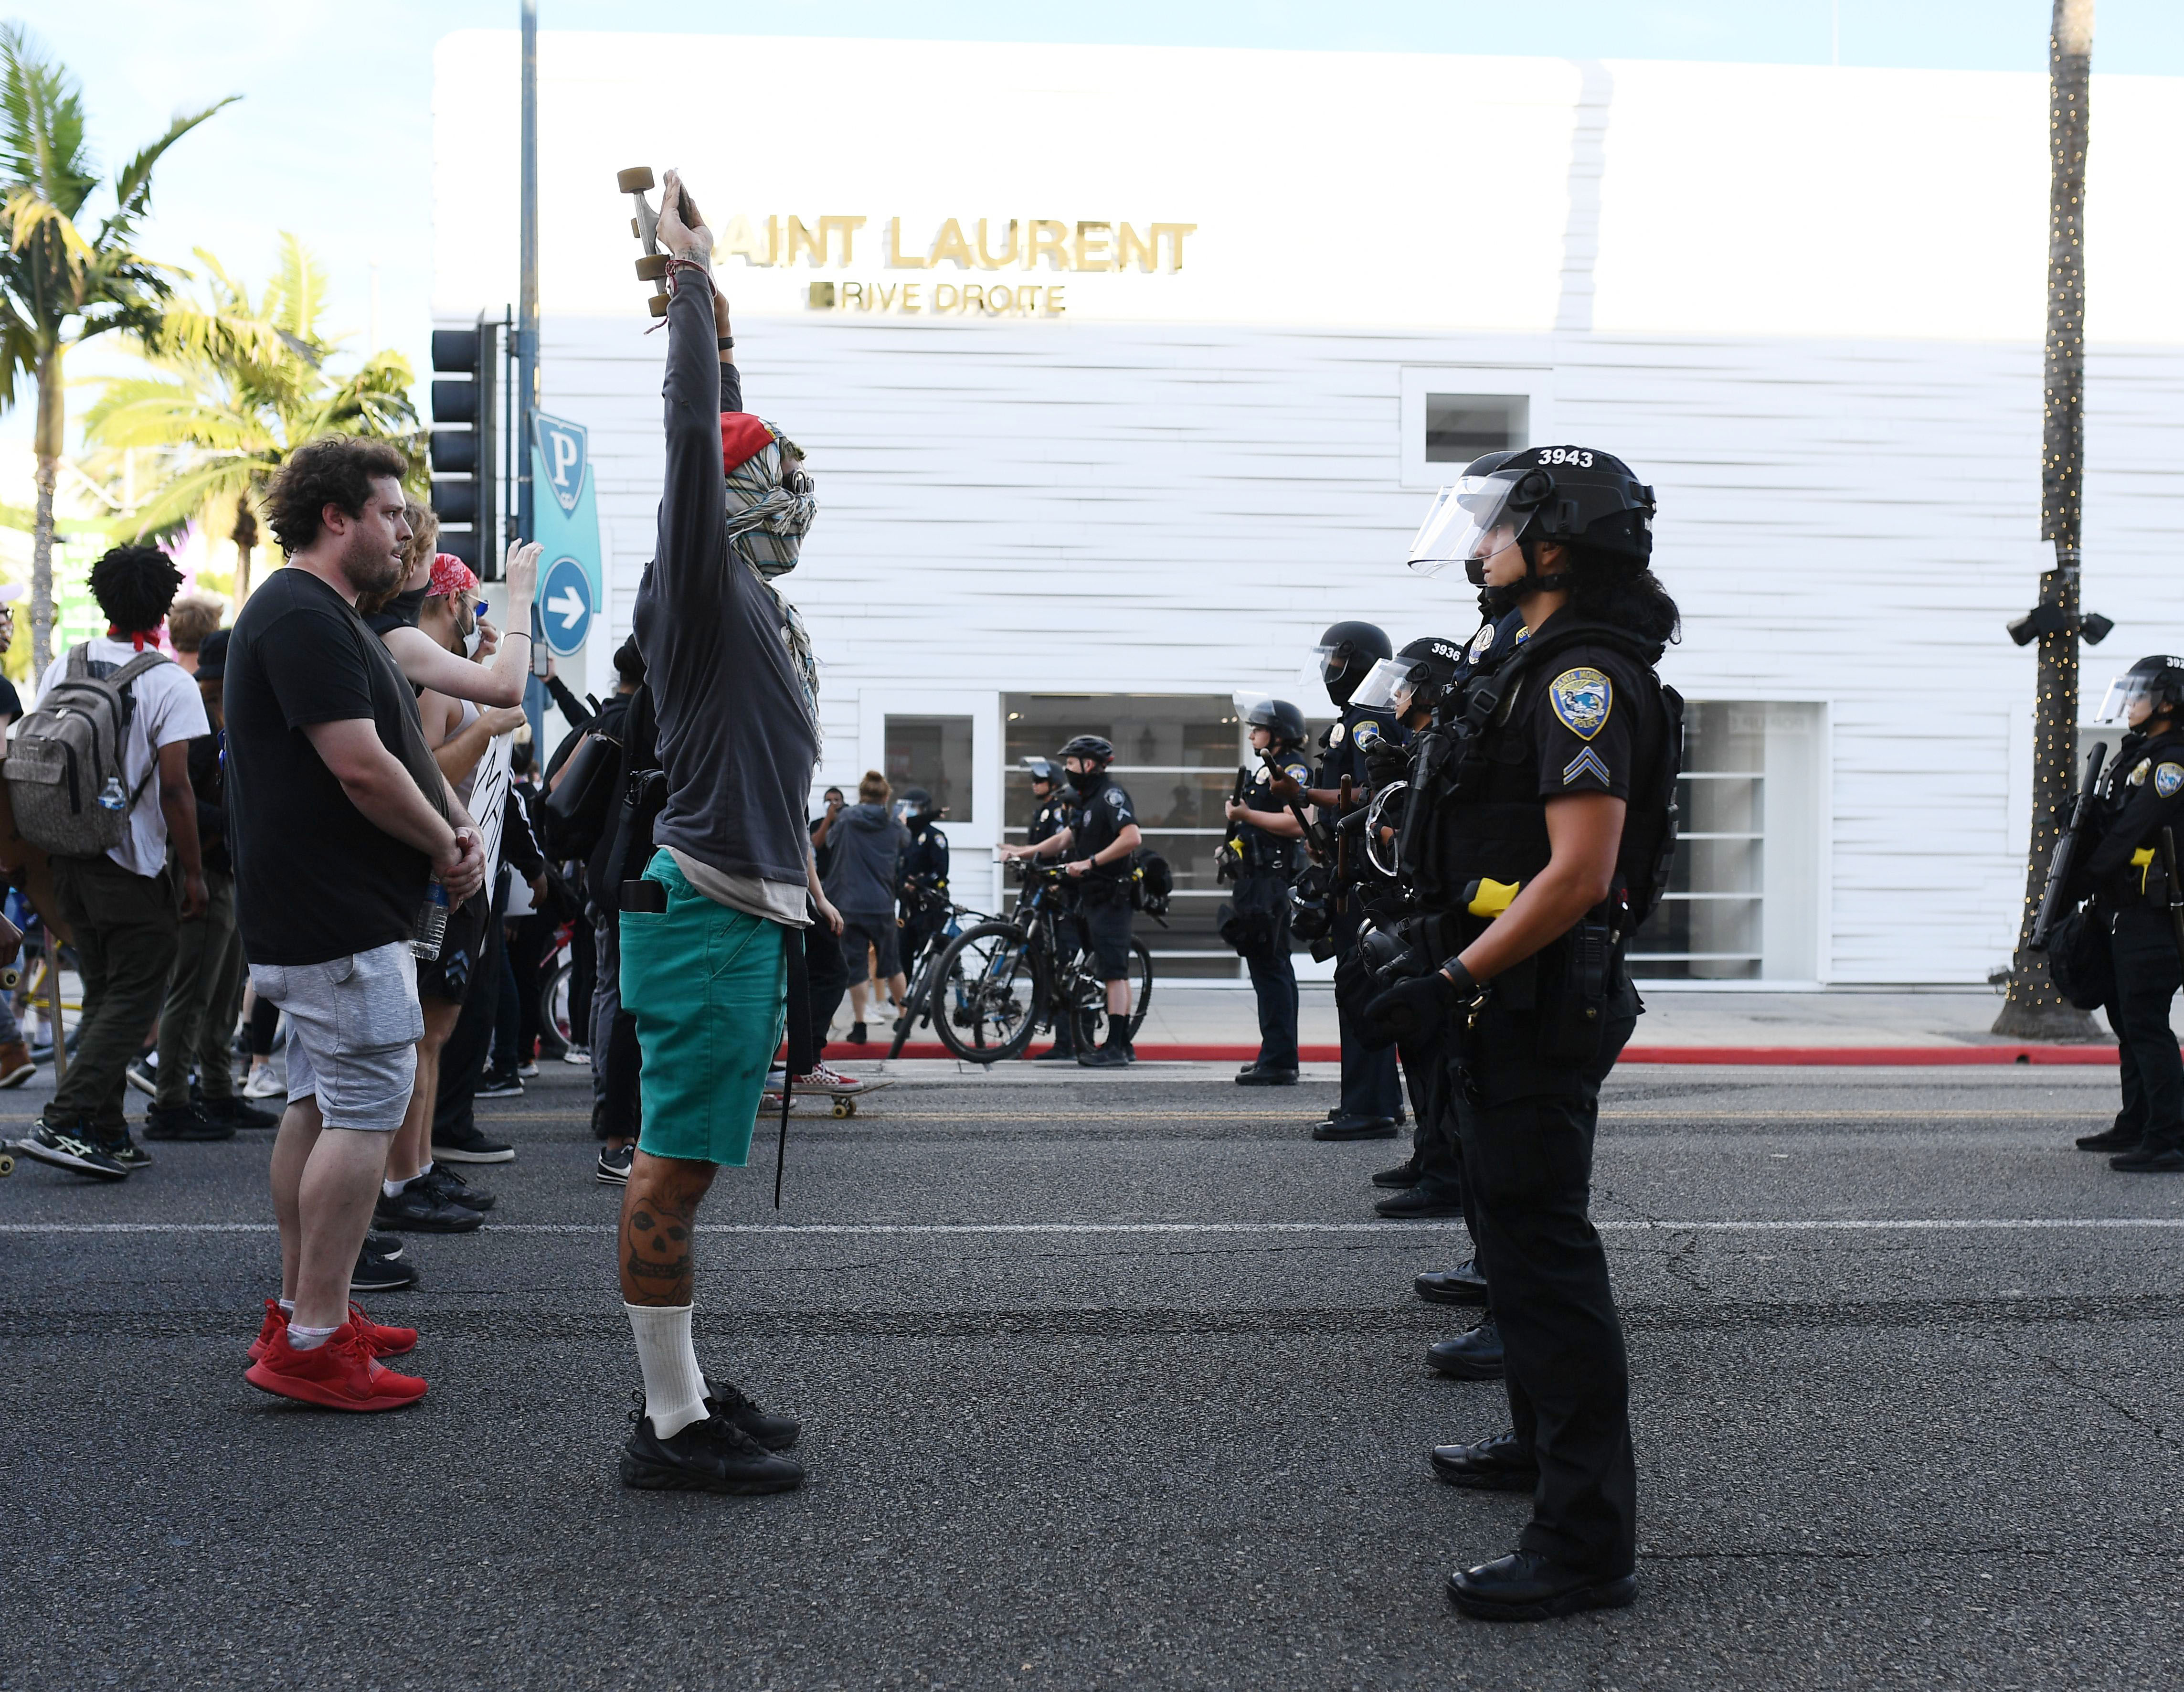 Protesters near Rodeo Drive in Beverly Hills, California.